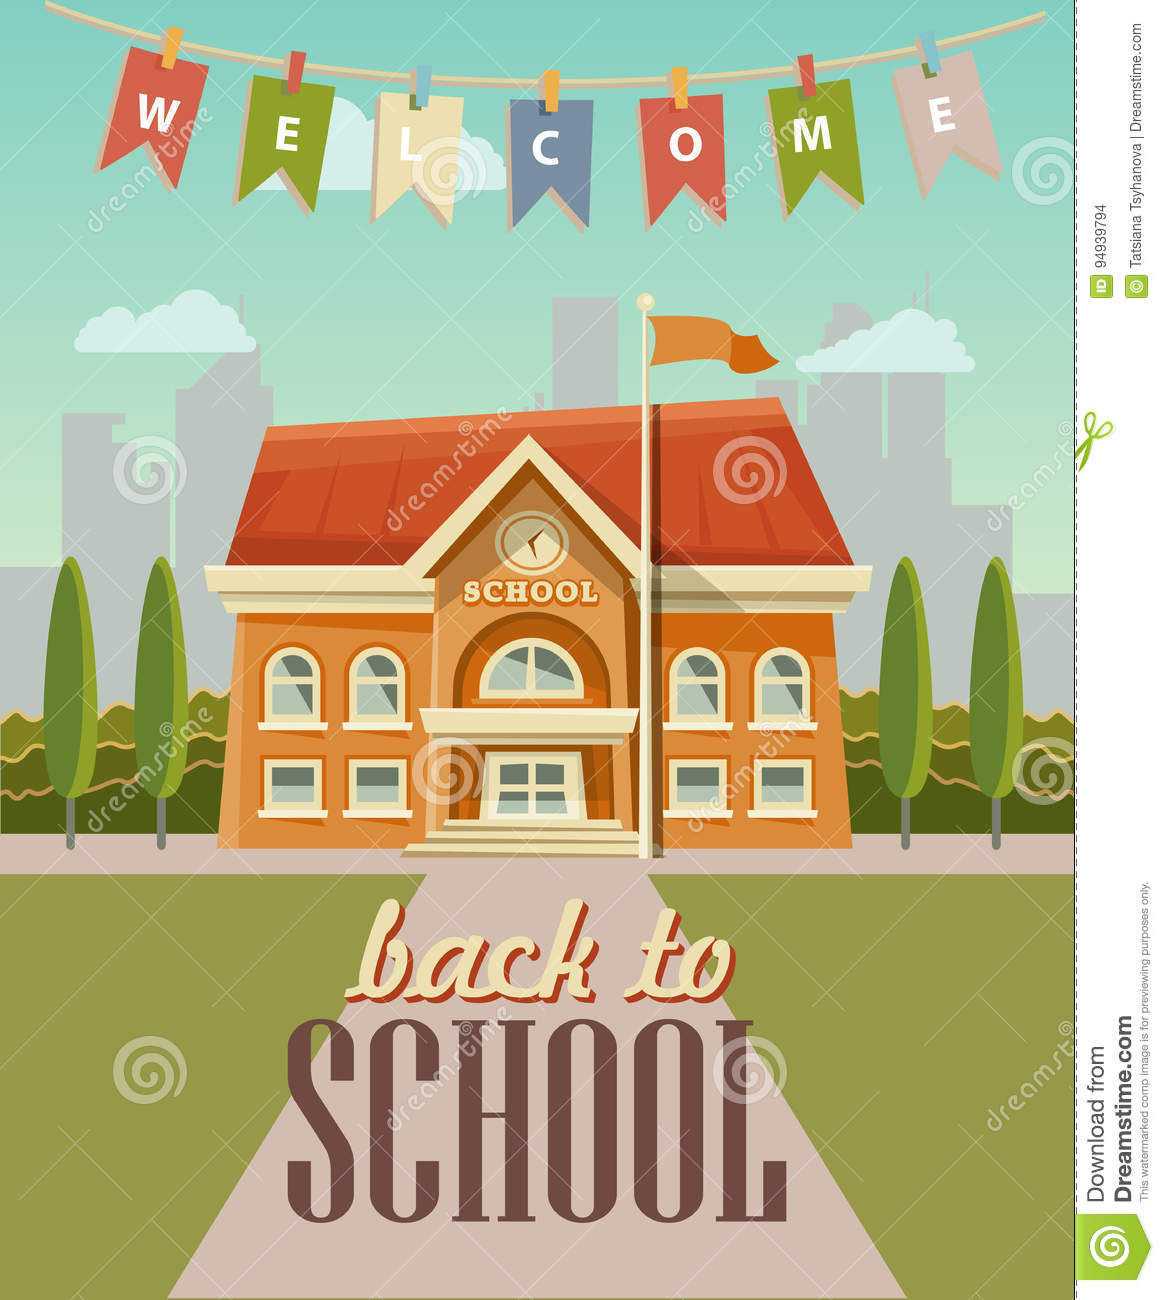 Back To School Vector Illustration School Building With Welcome